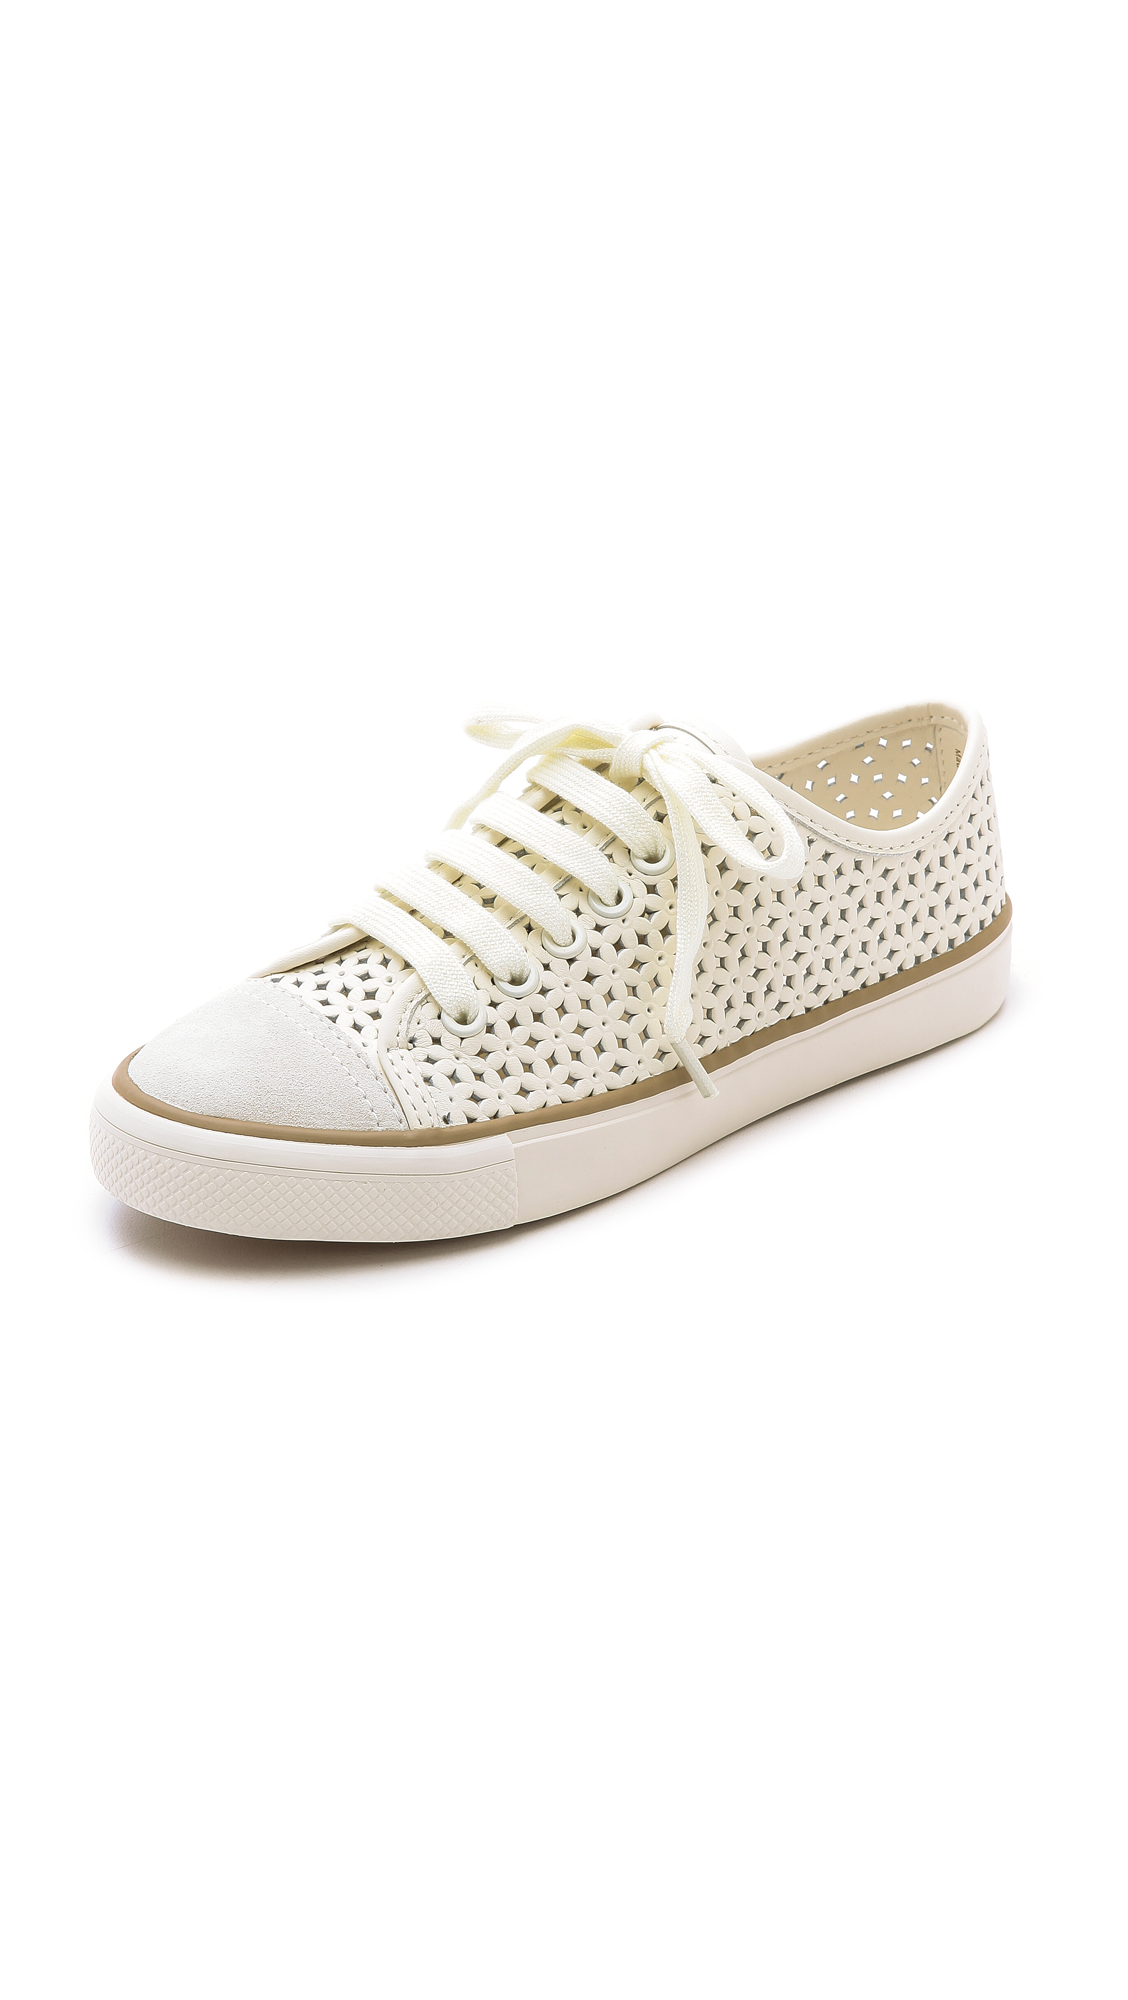 3cf8593d8ab472 Tory Burch Daisy Perforated Low Top Sneakers